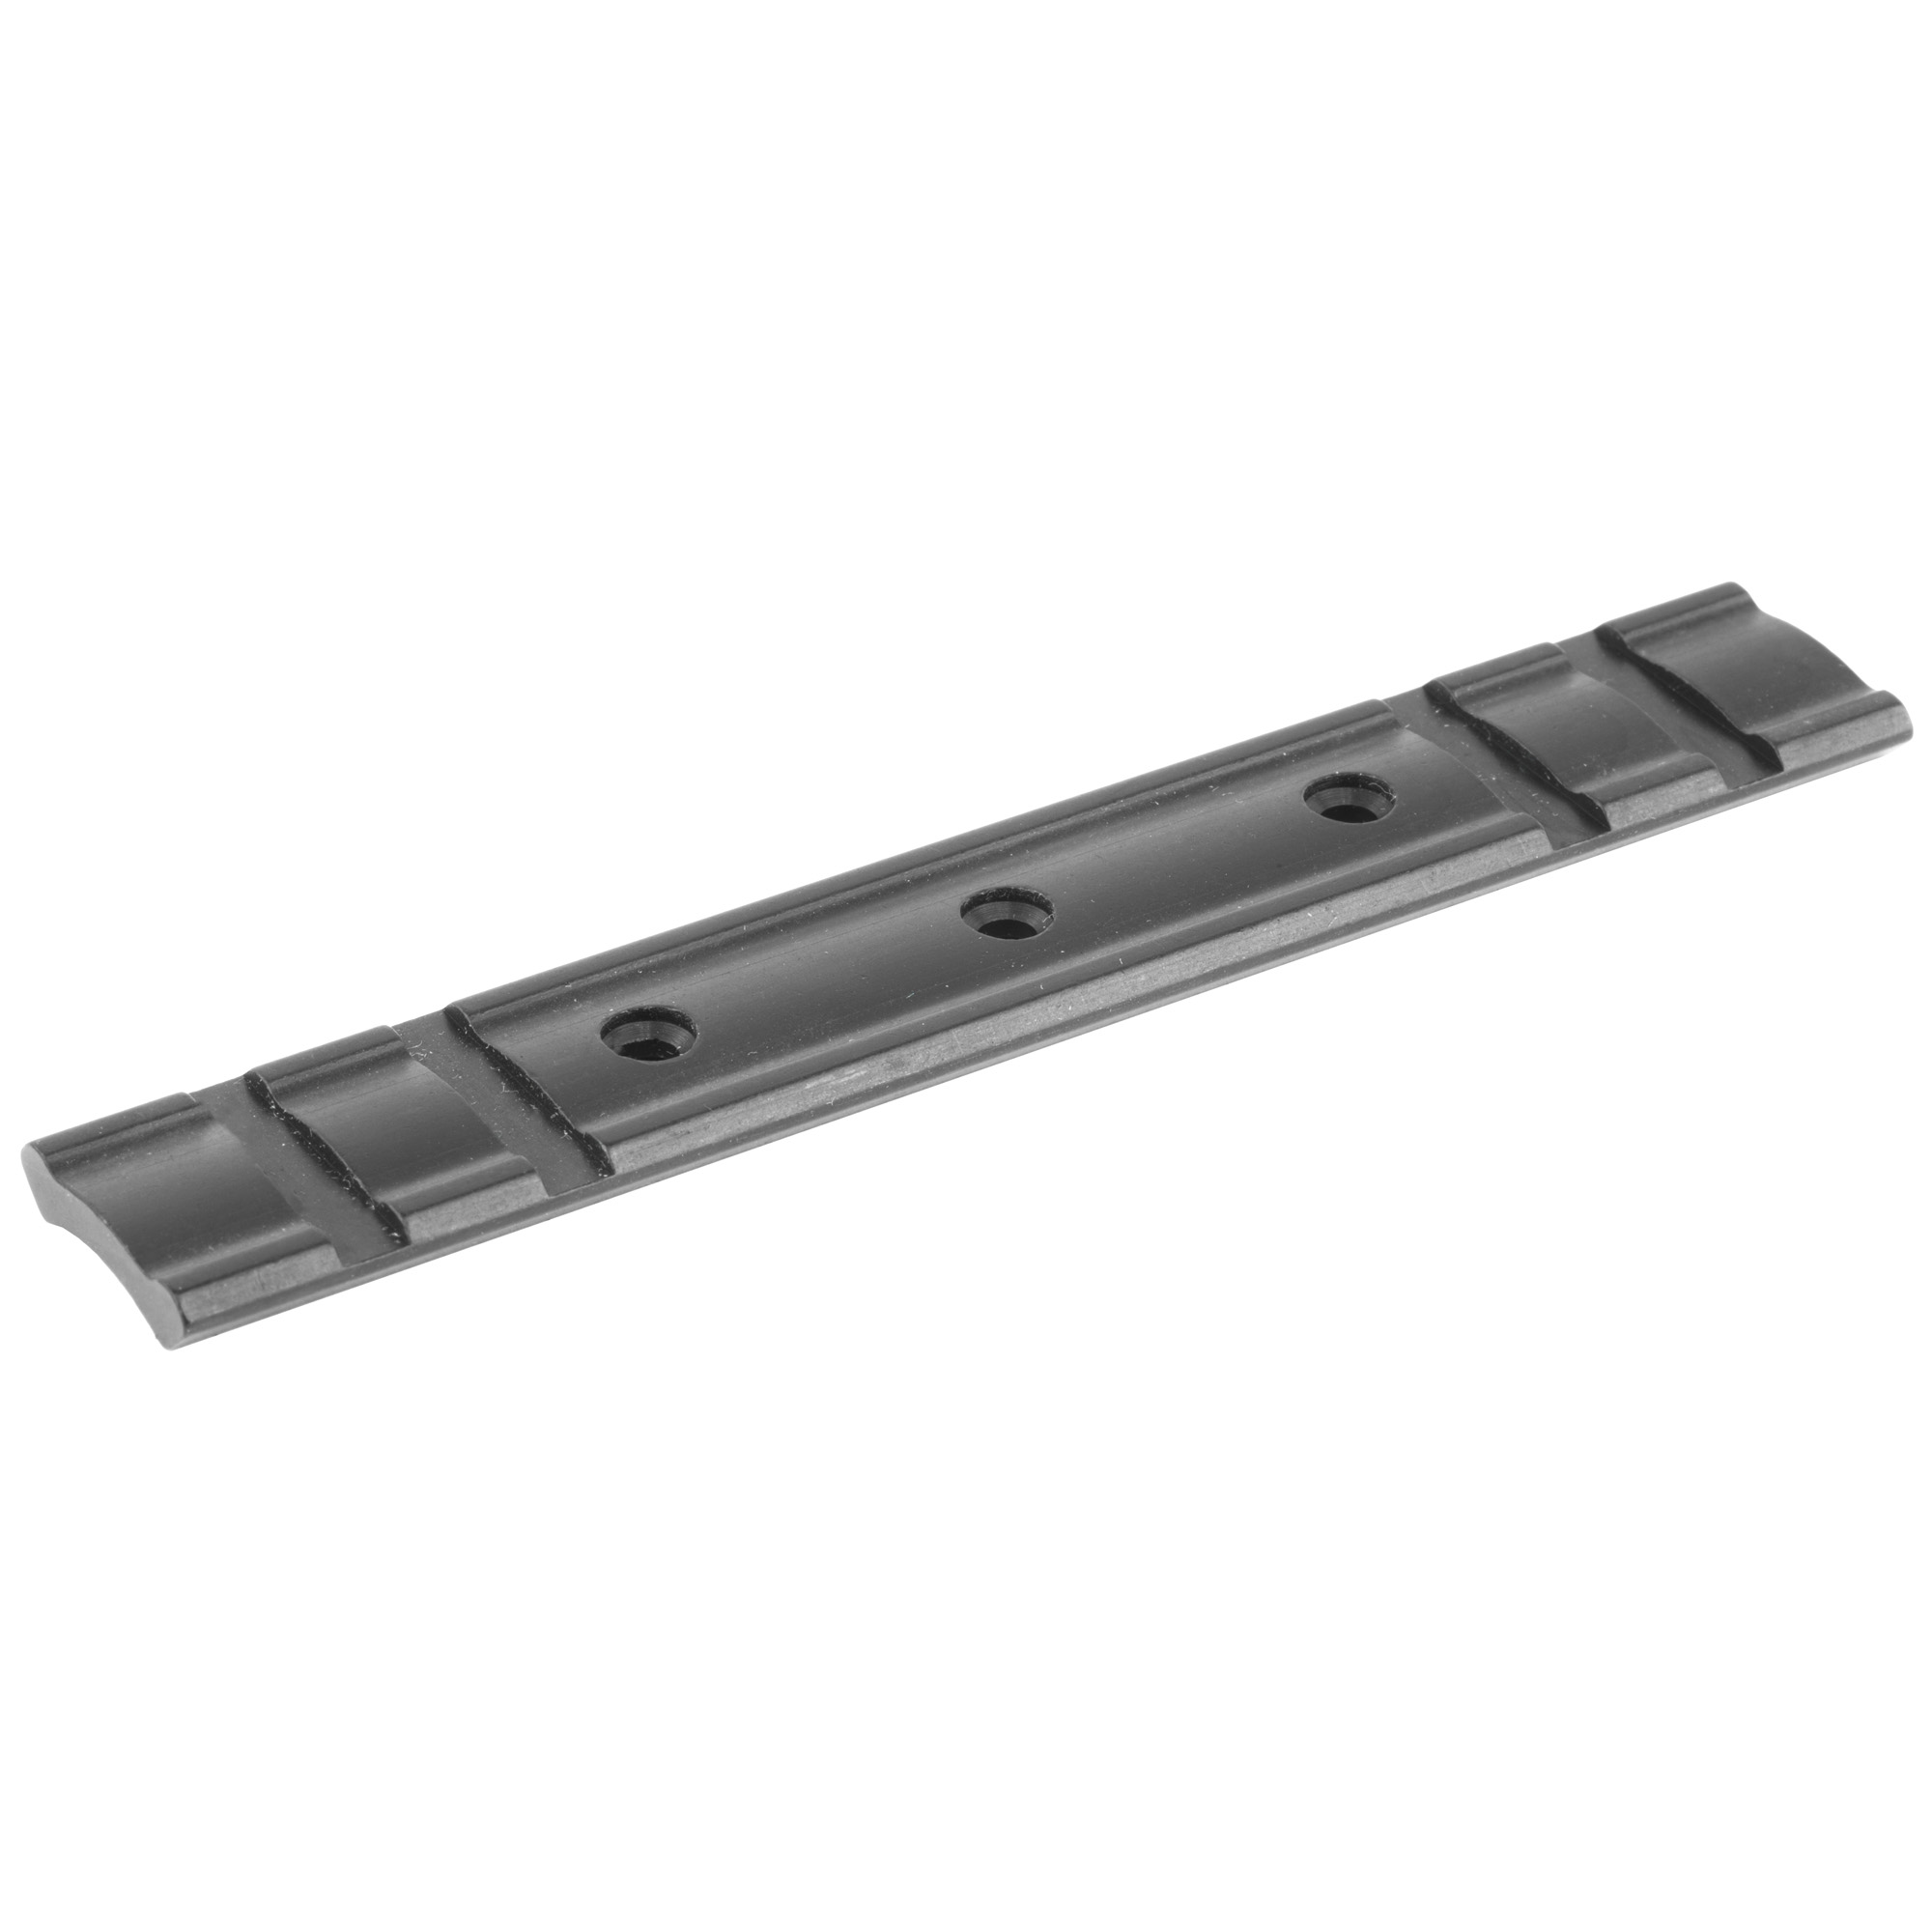 Weaver scope rail made to fit 22lr or 17/22 Mag made by Remington.